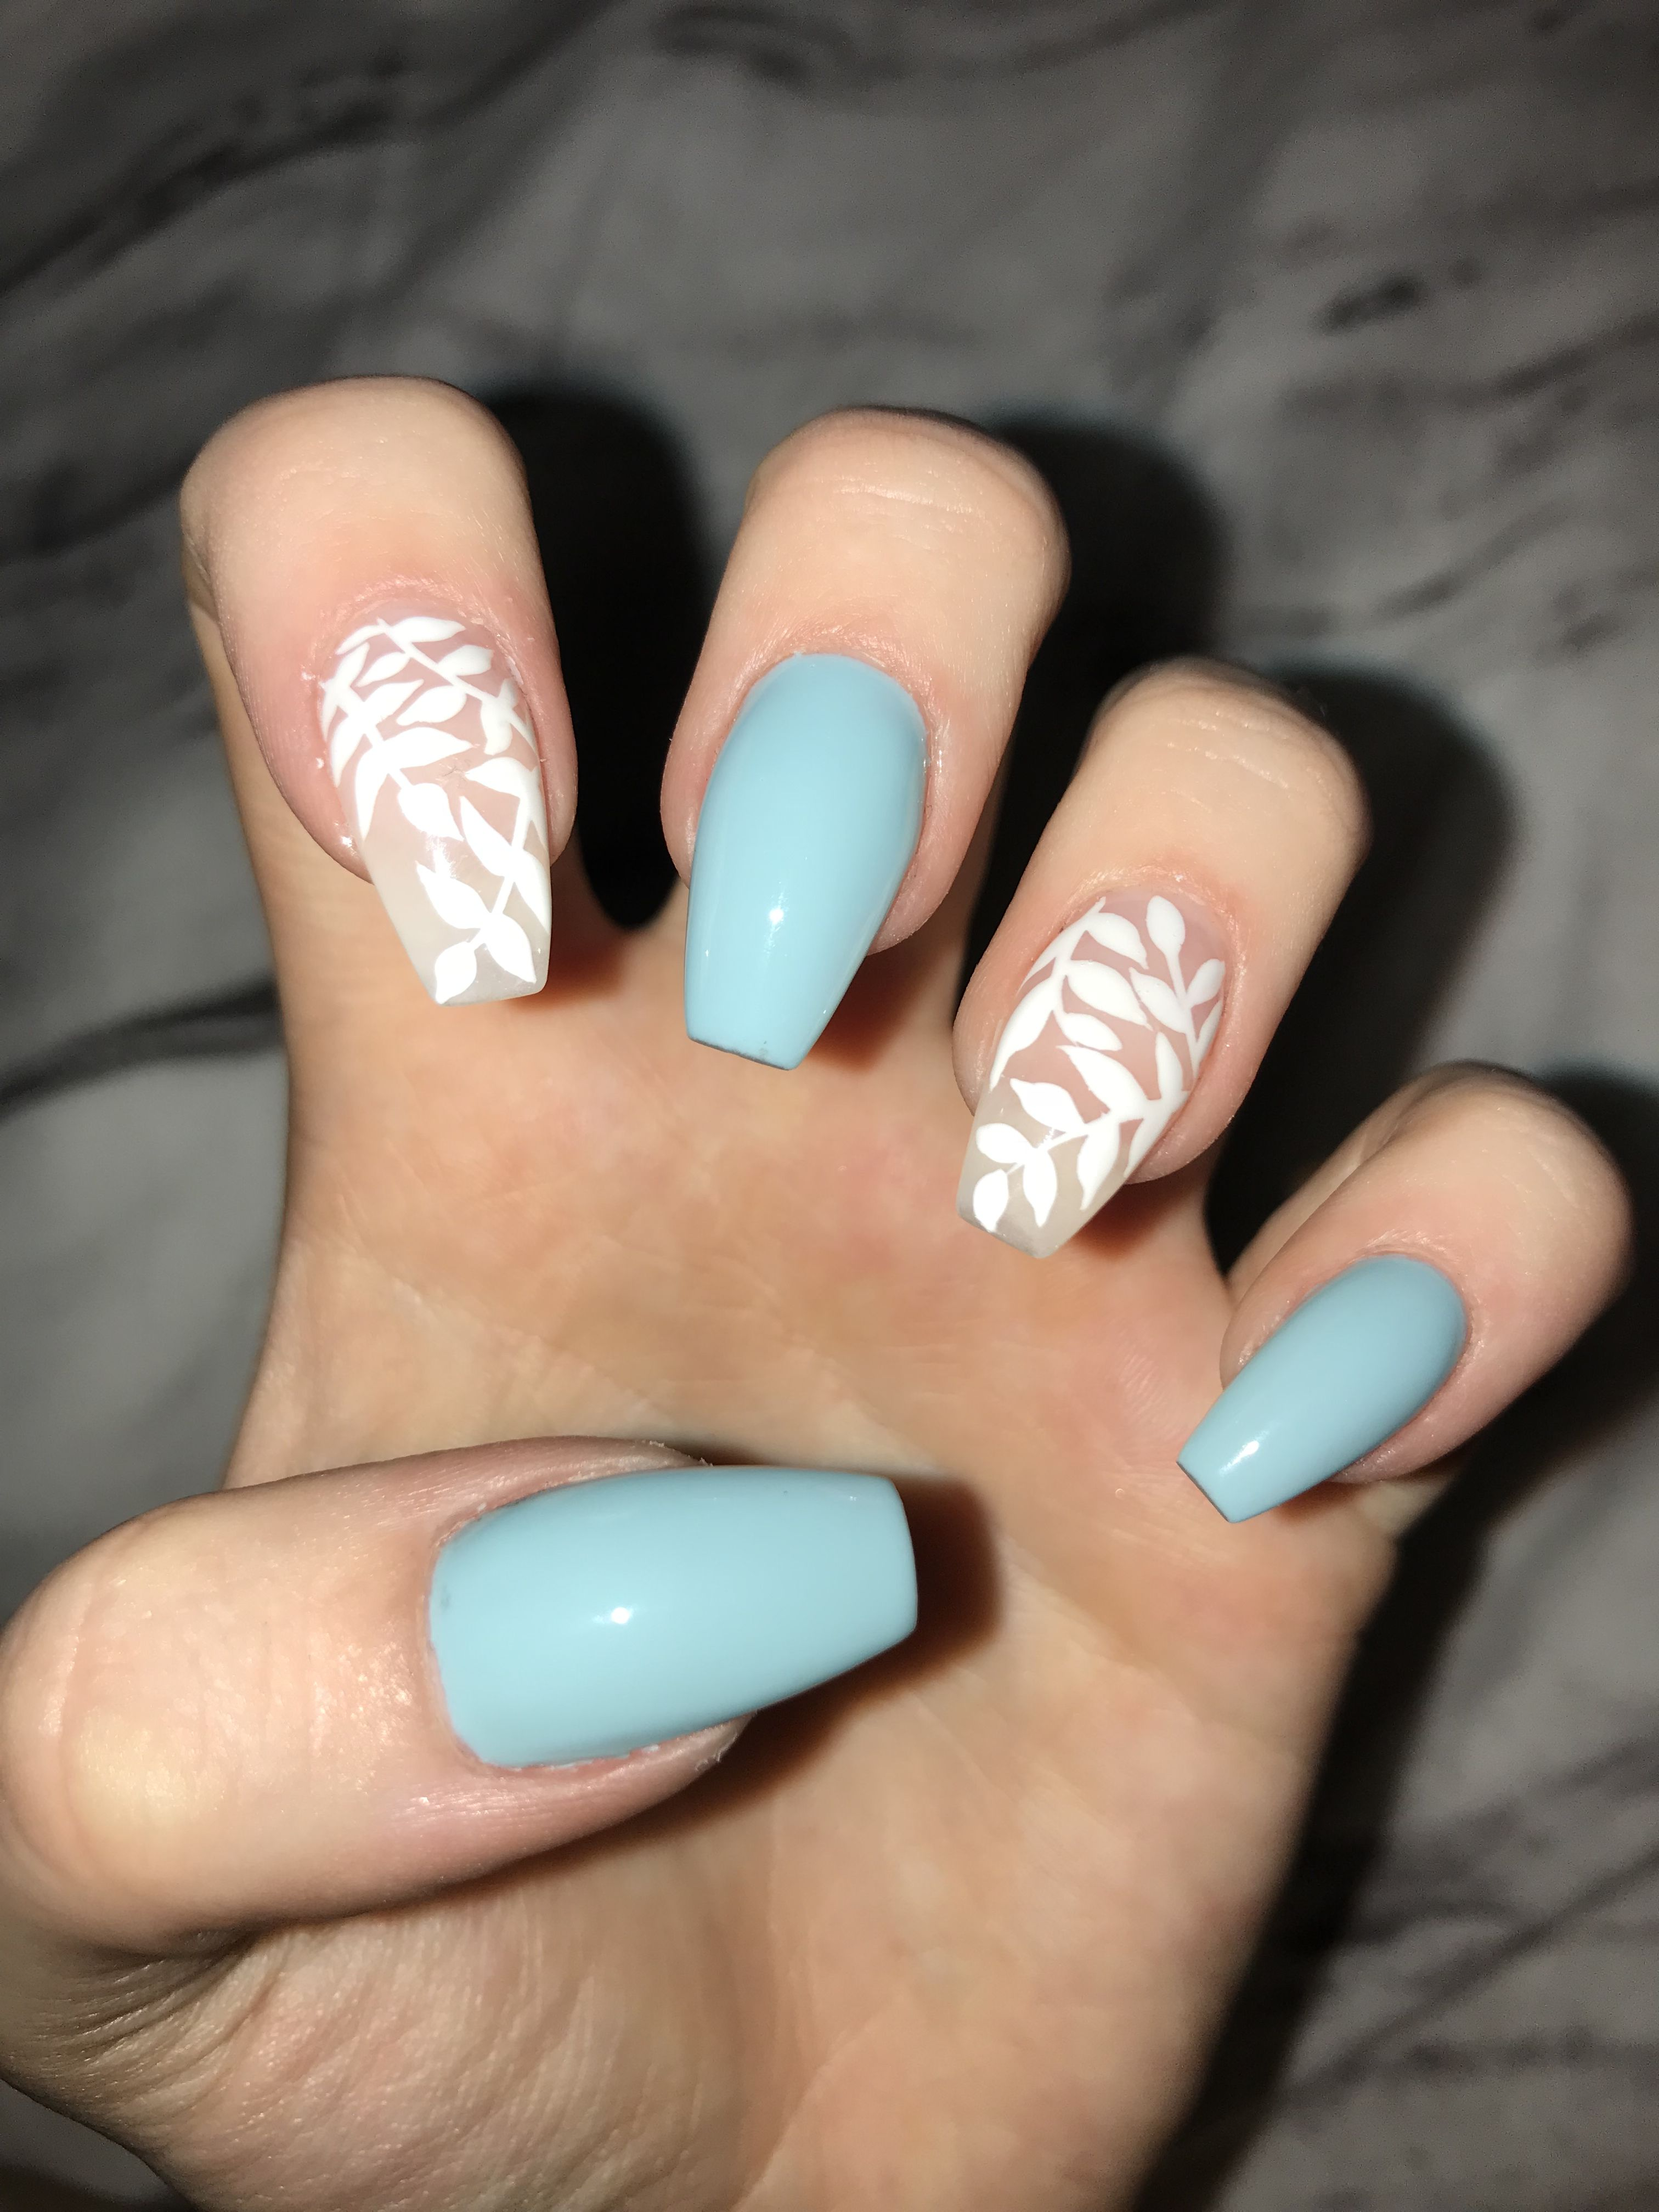 Blue Acrylic Coffin Nails With White Leaf Nail Art Blue Acrylic